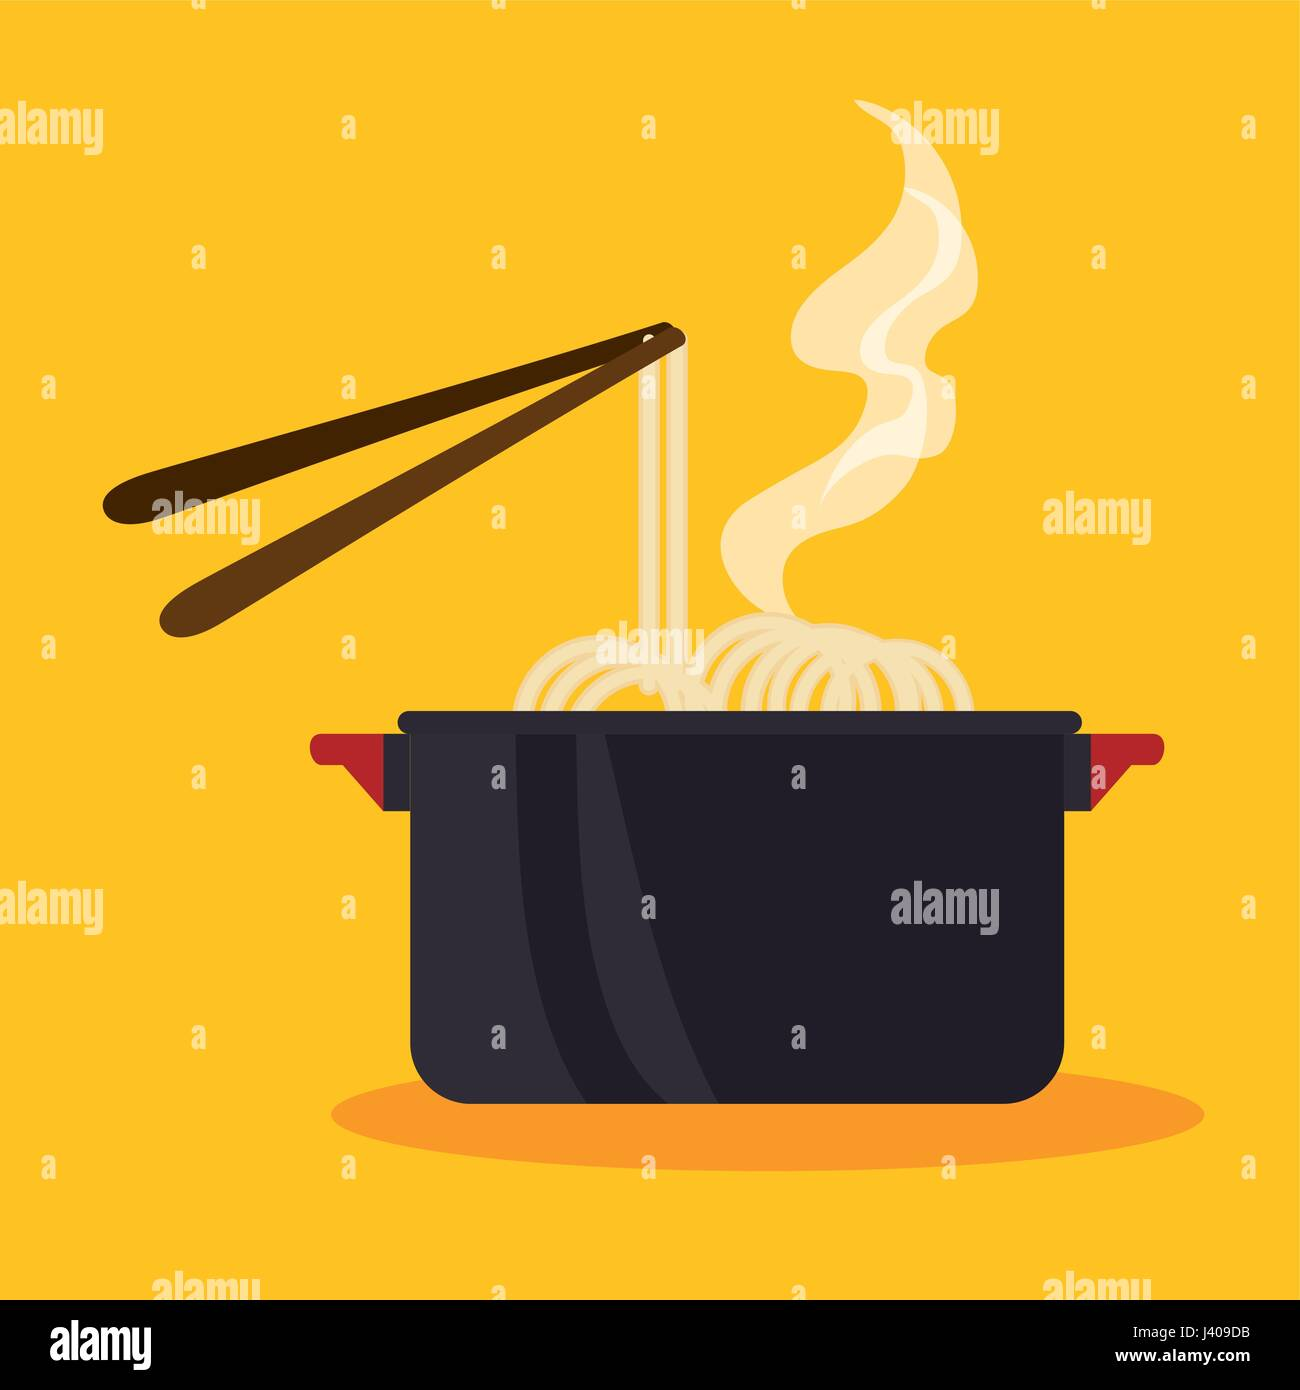 Cooking pot icon - Stock Vector